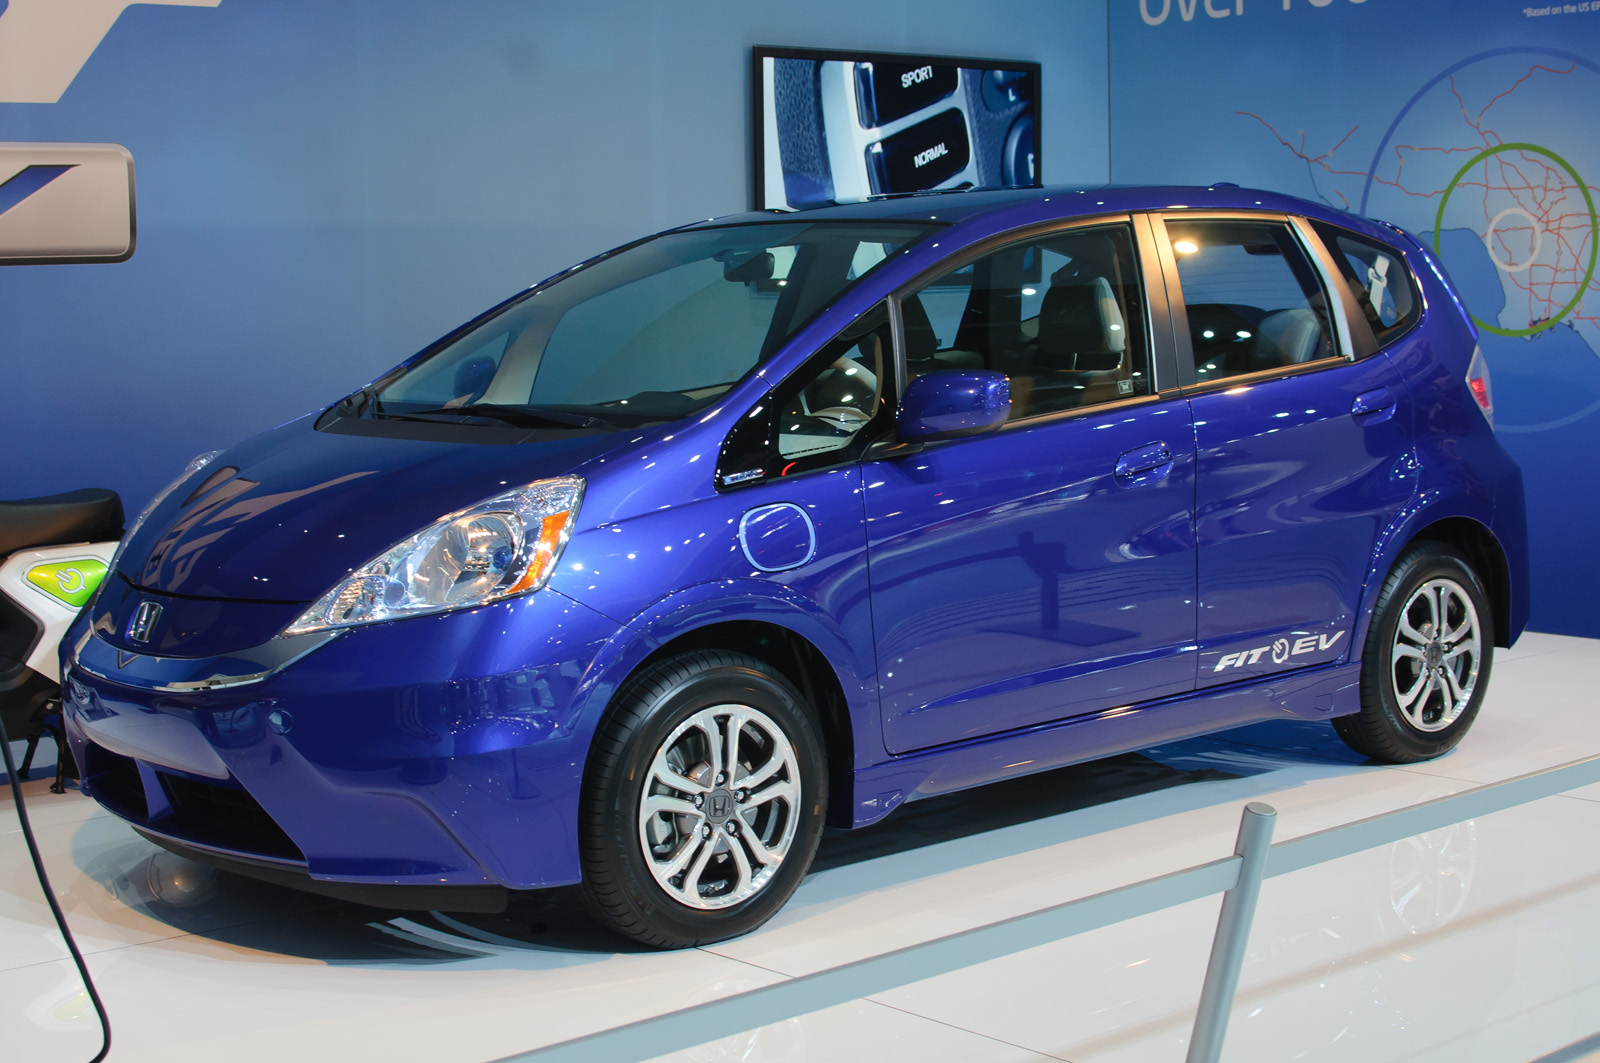 2013 model year honda fit ev electric car unveiled at the 2011 la auto show